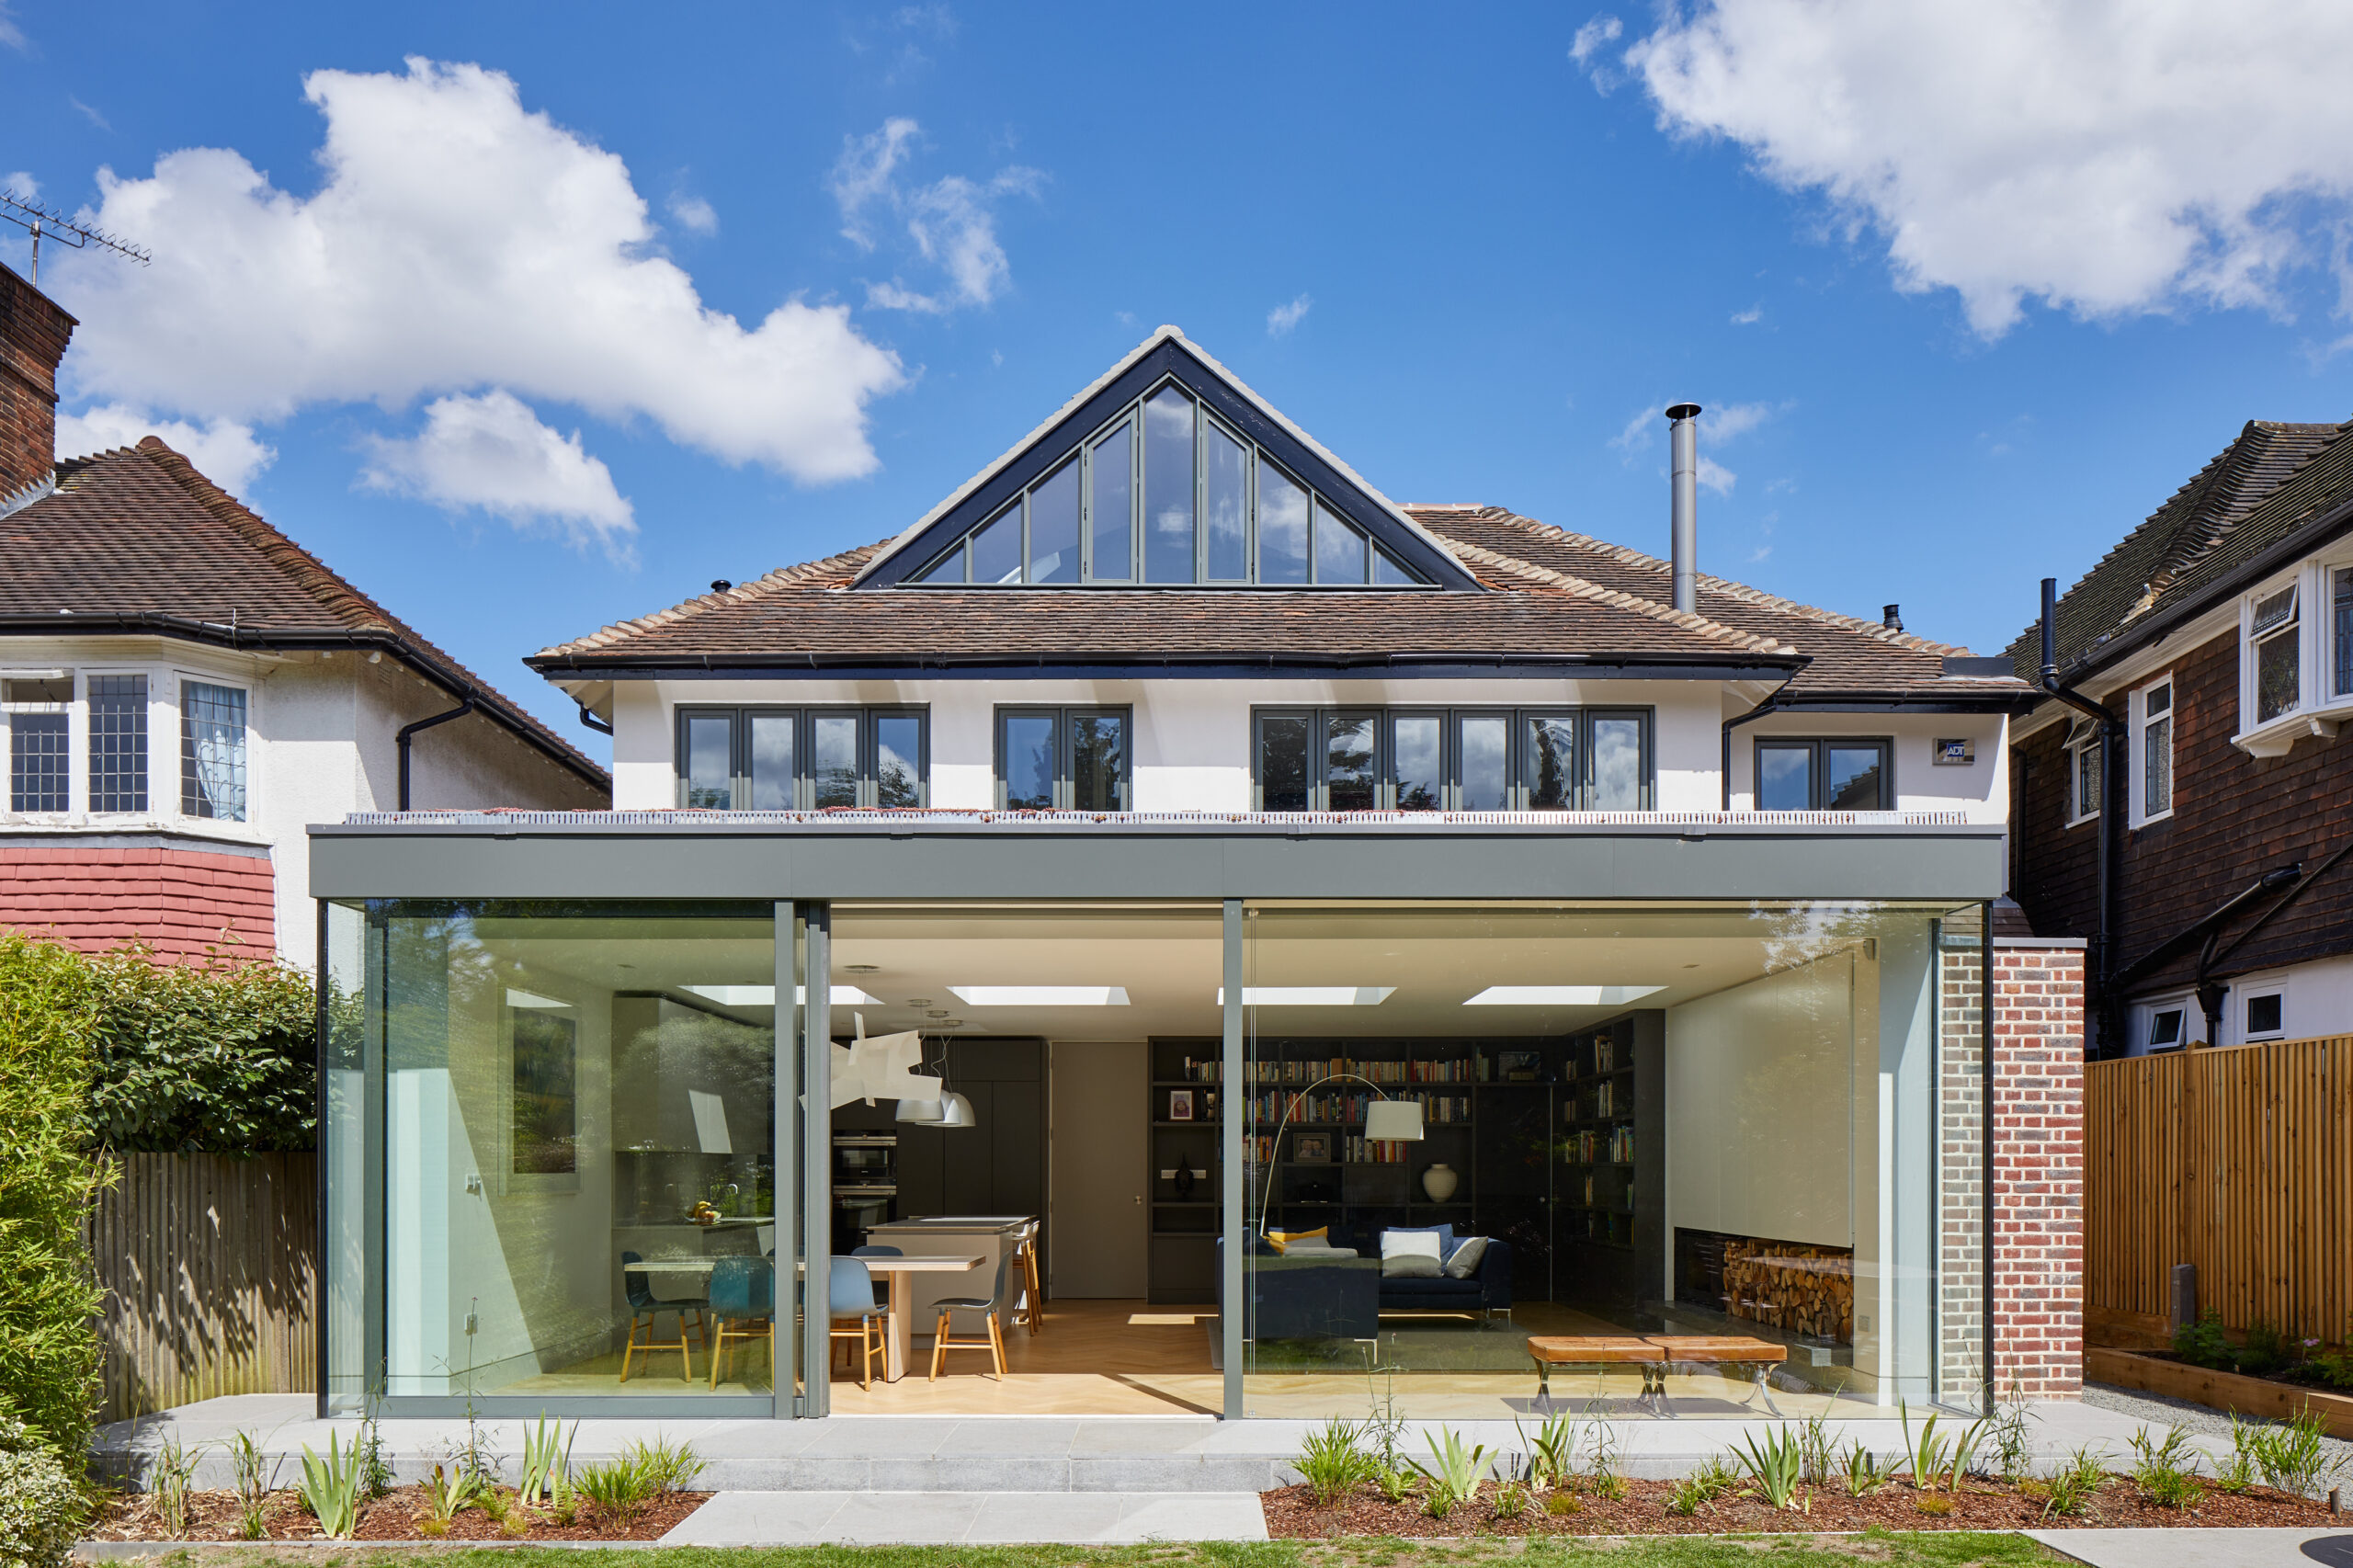 R2 Studio Architects-Sheen House-Andy Stagg-30